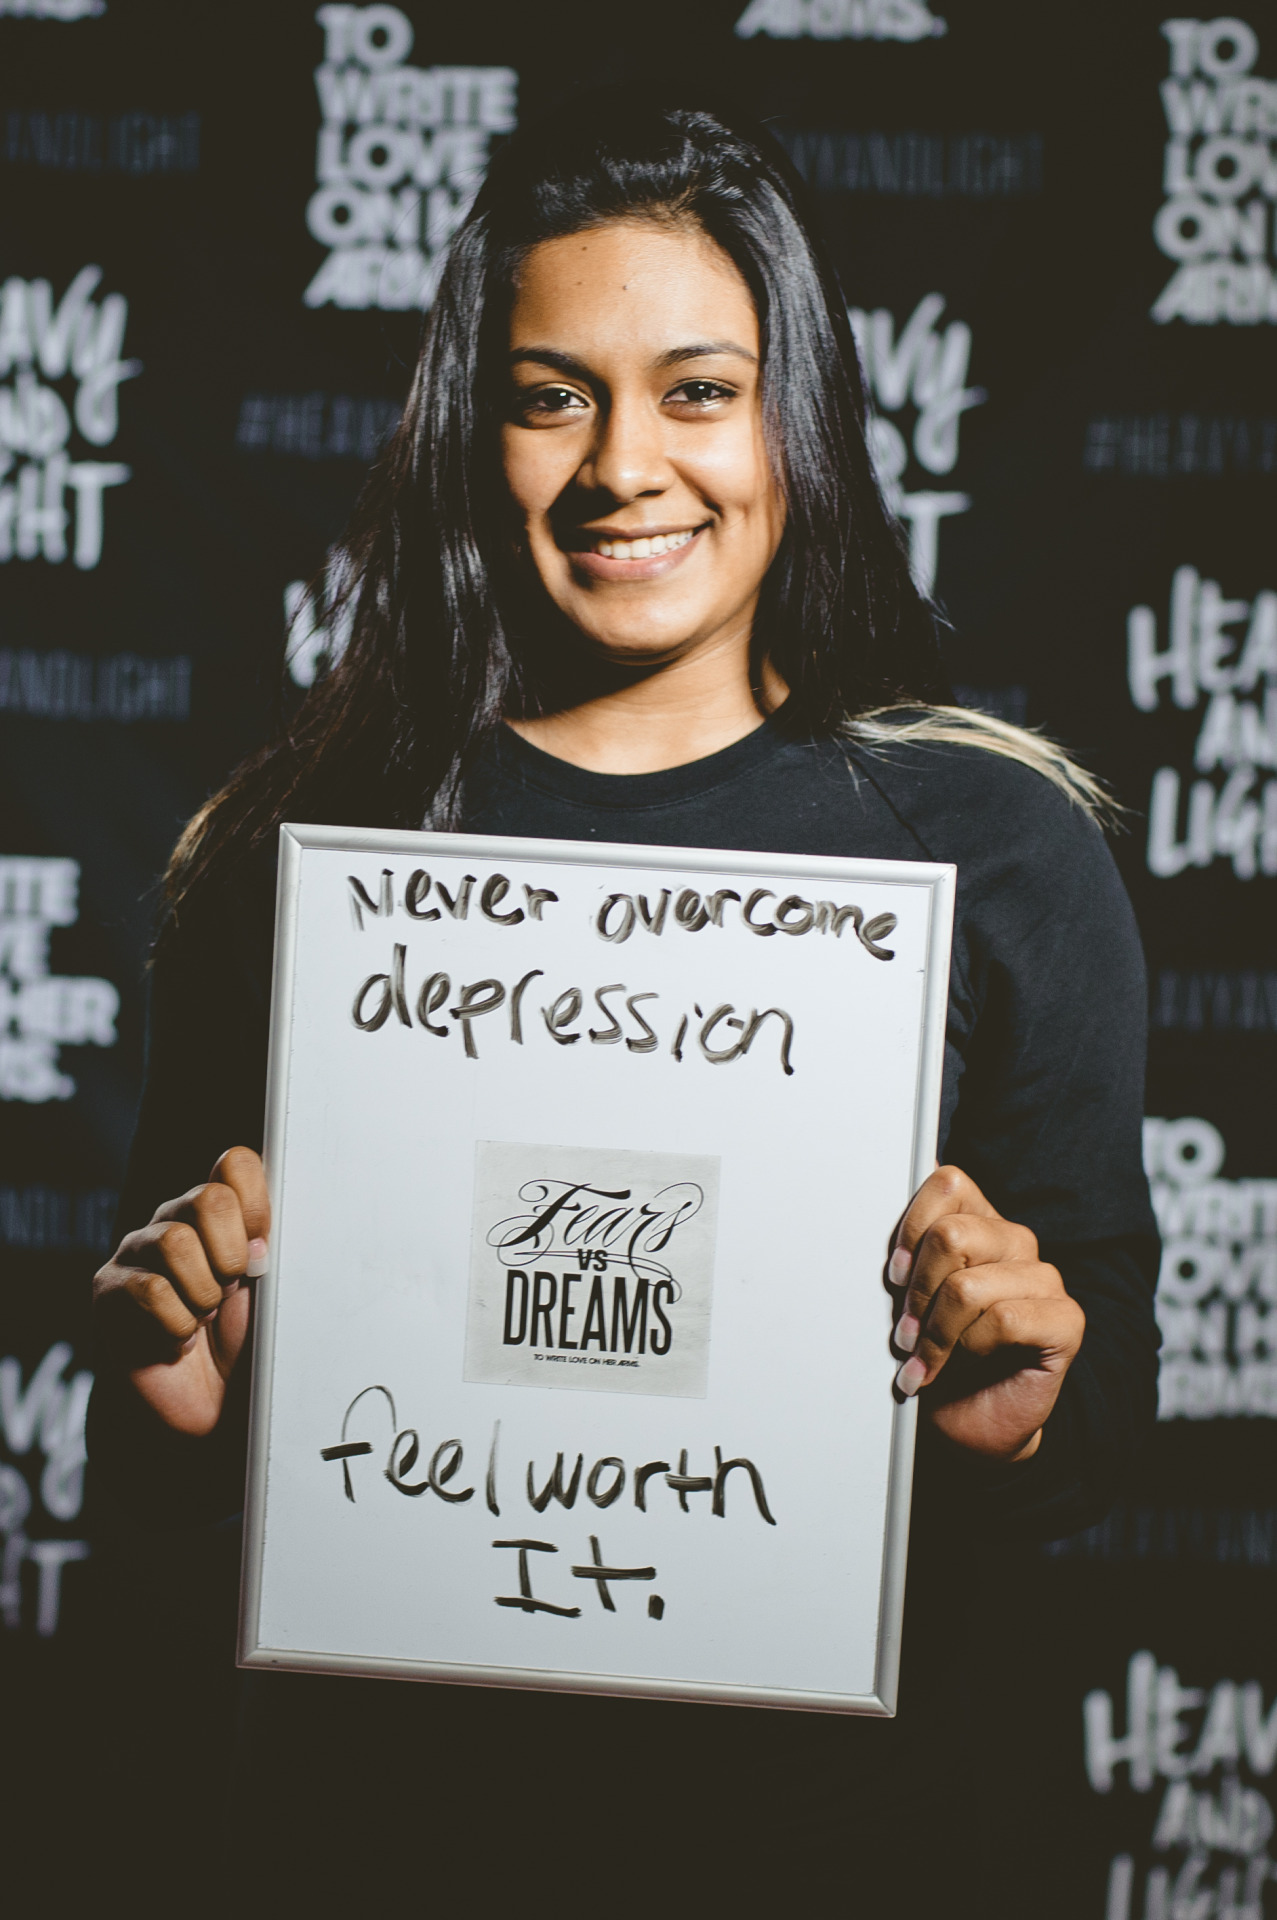 fearsvsdreams:  Fear: Never overcome depression. | Dream: Feel worth it.